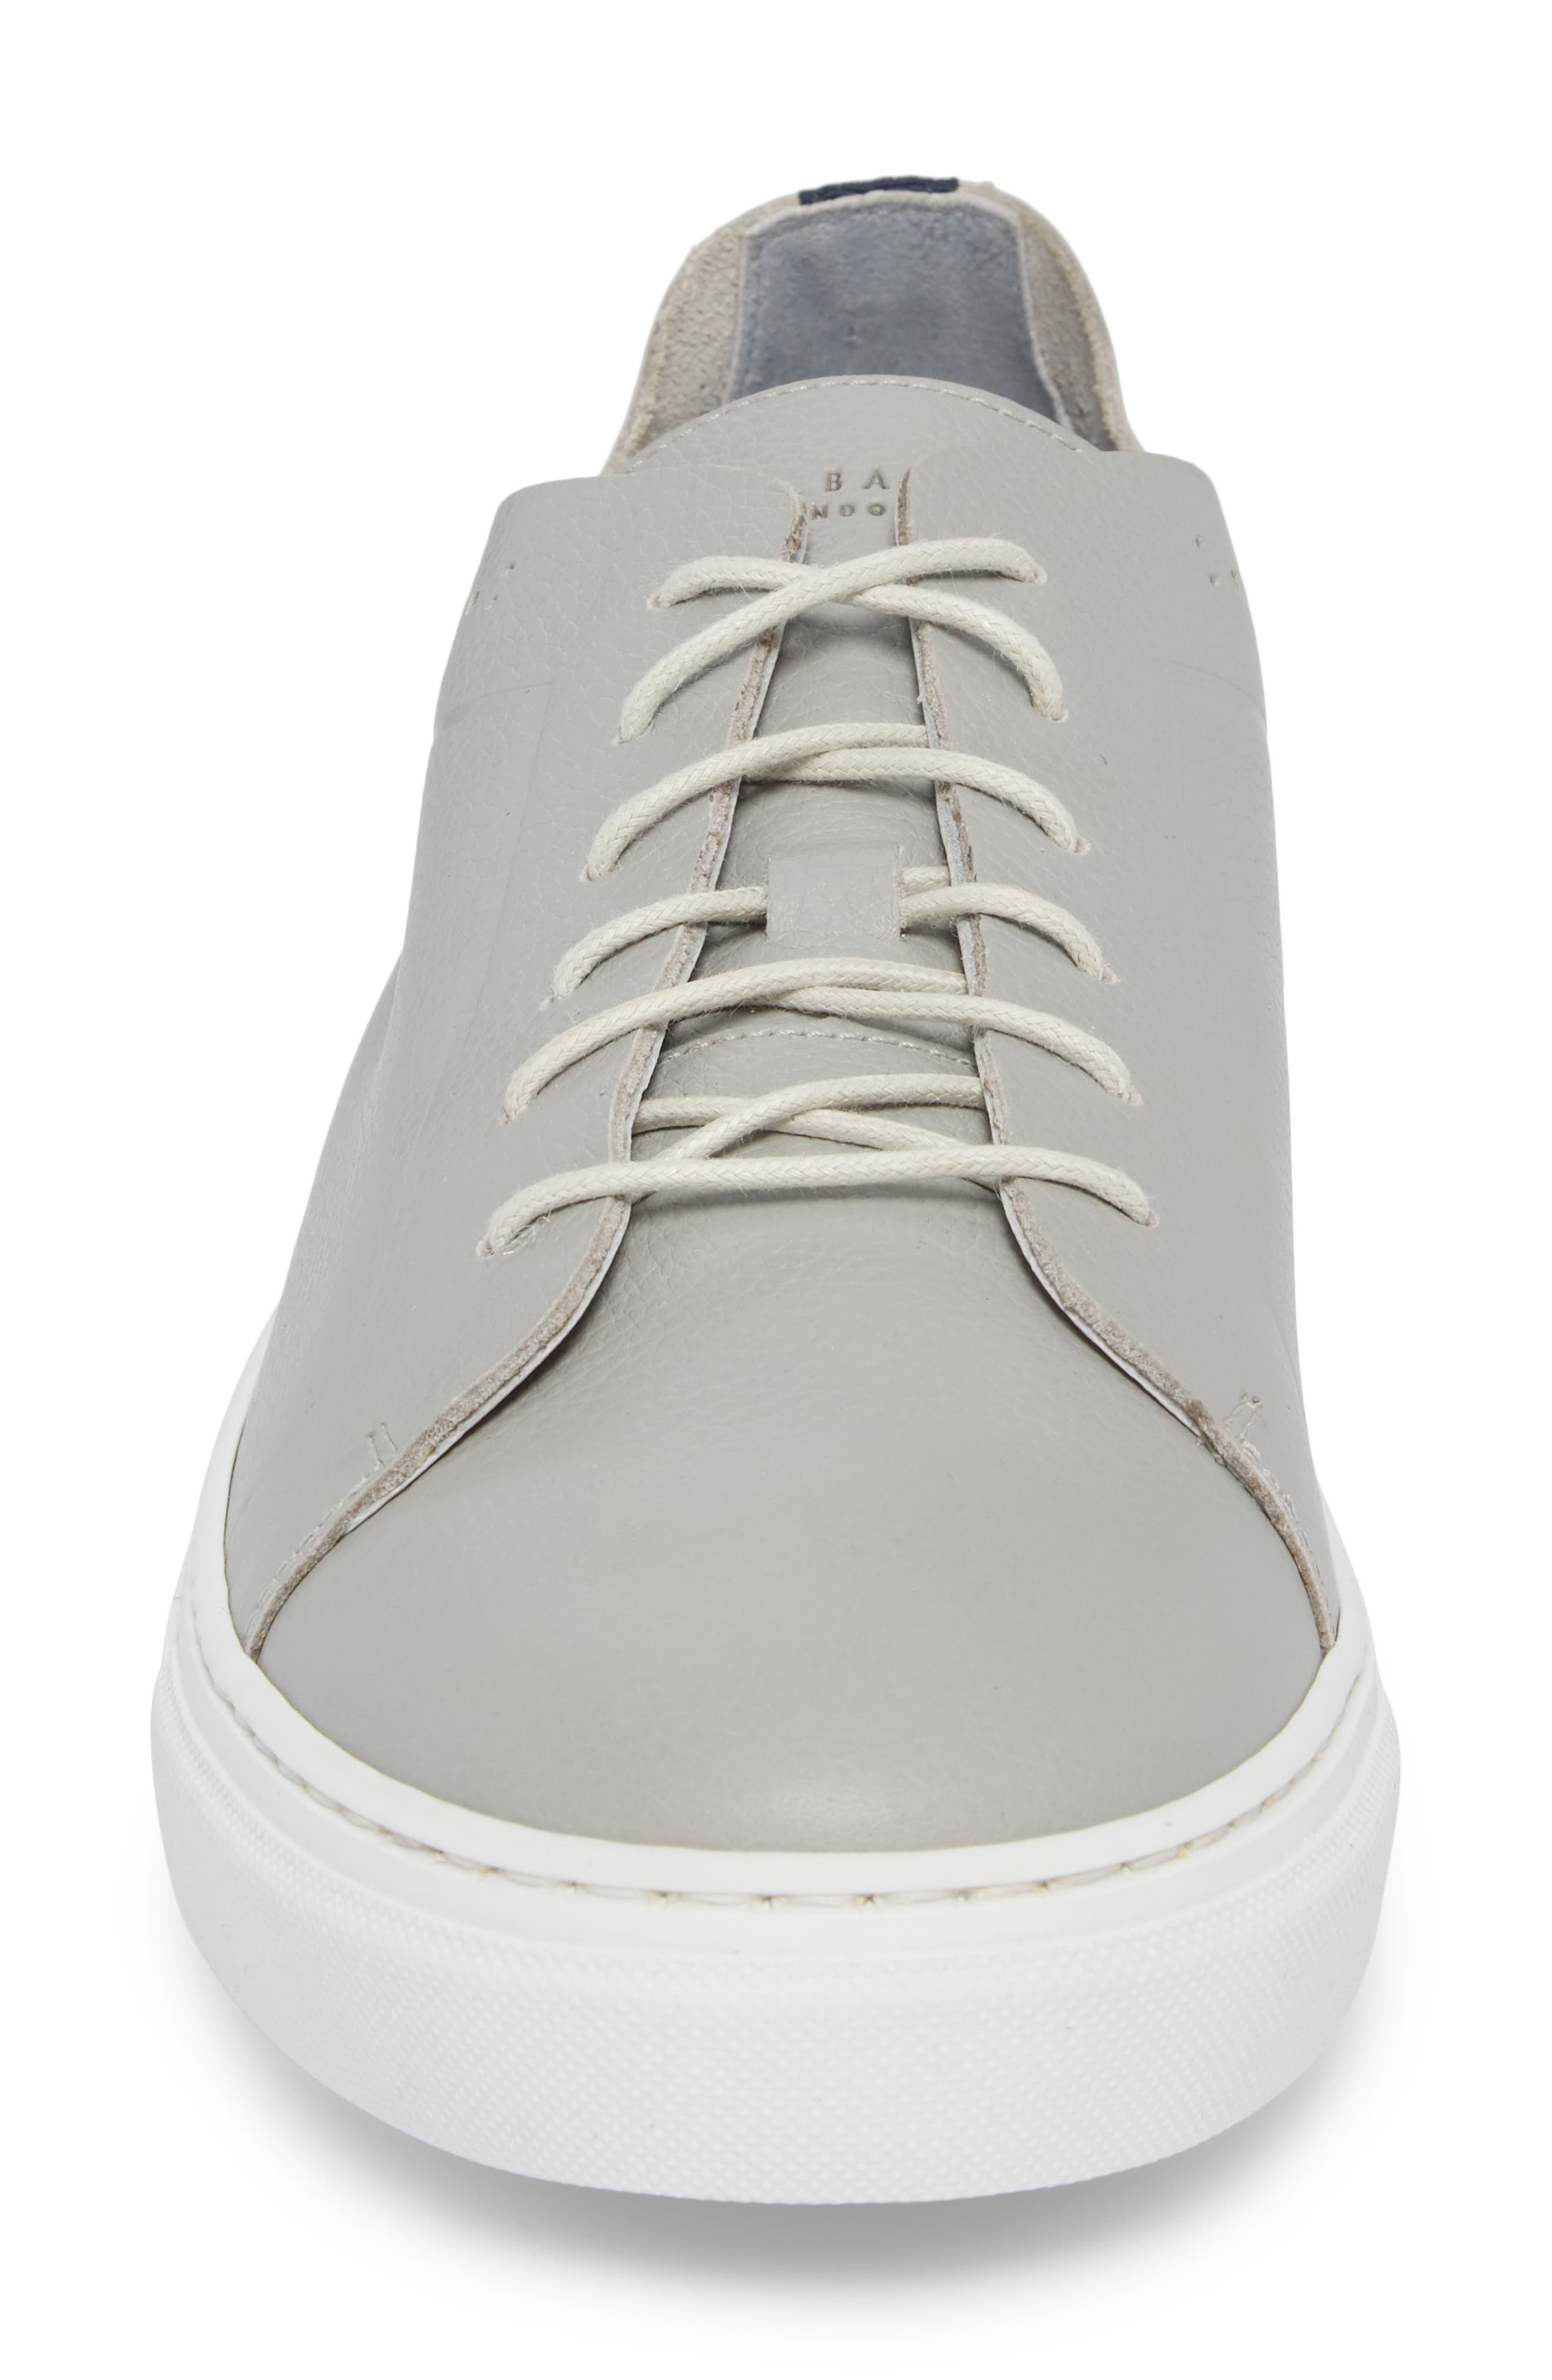 Nowull Brogued Sneaker,                             Alternate thumbnail 4, color,                             LIGHT GREY LEATHER